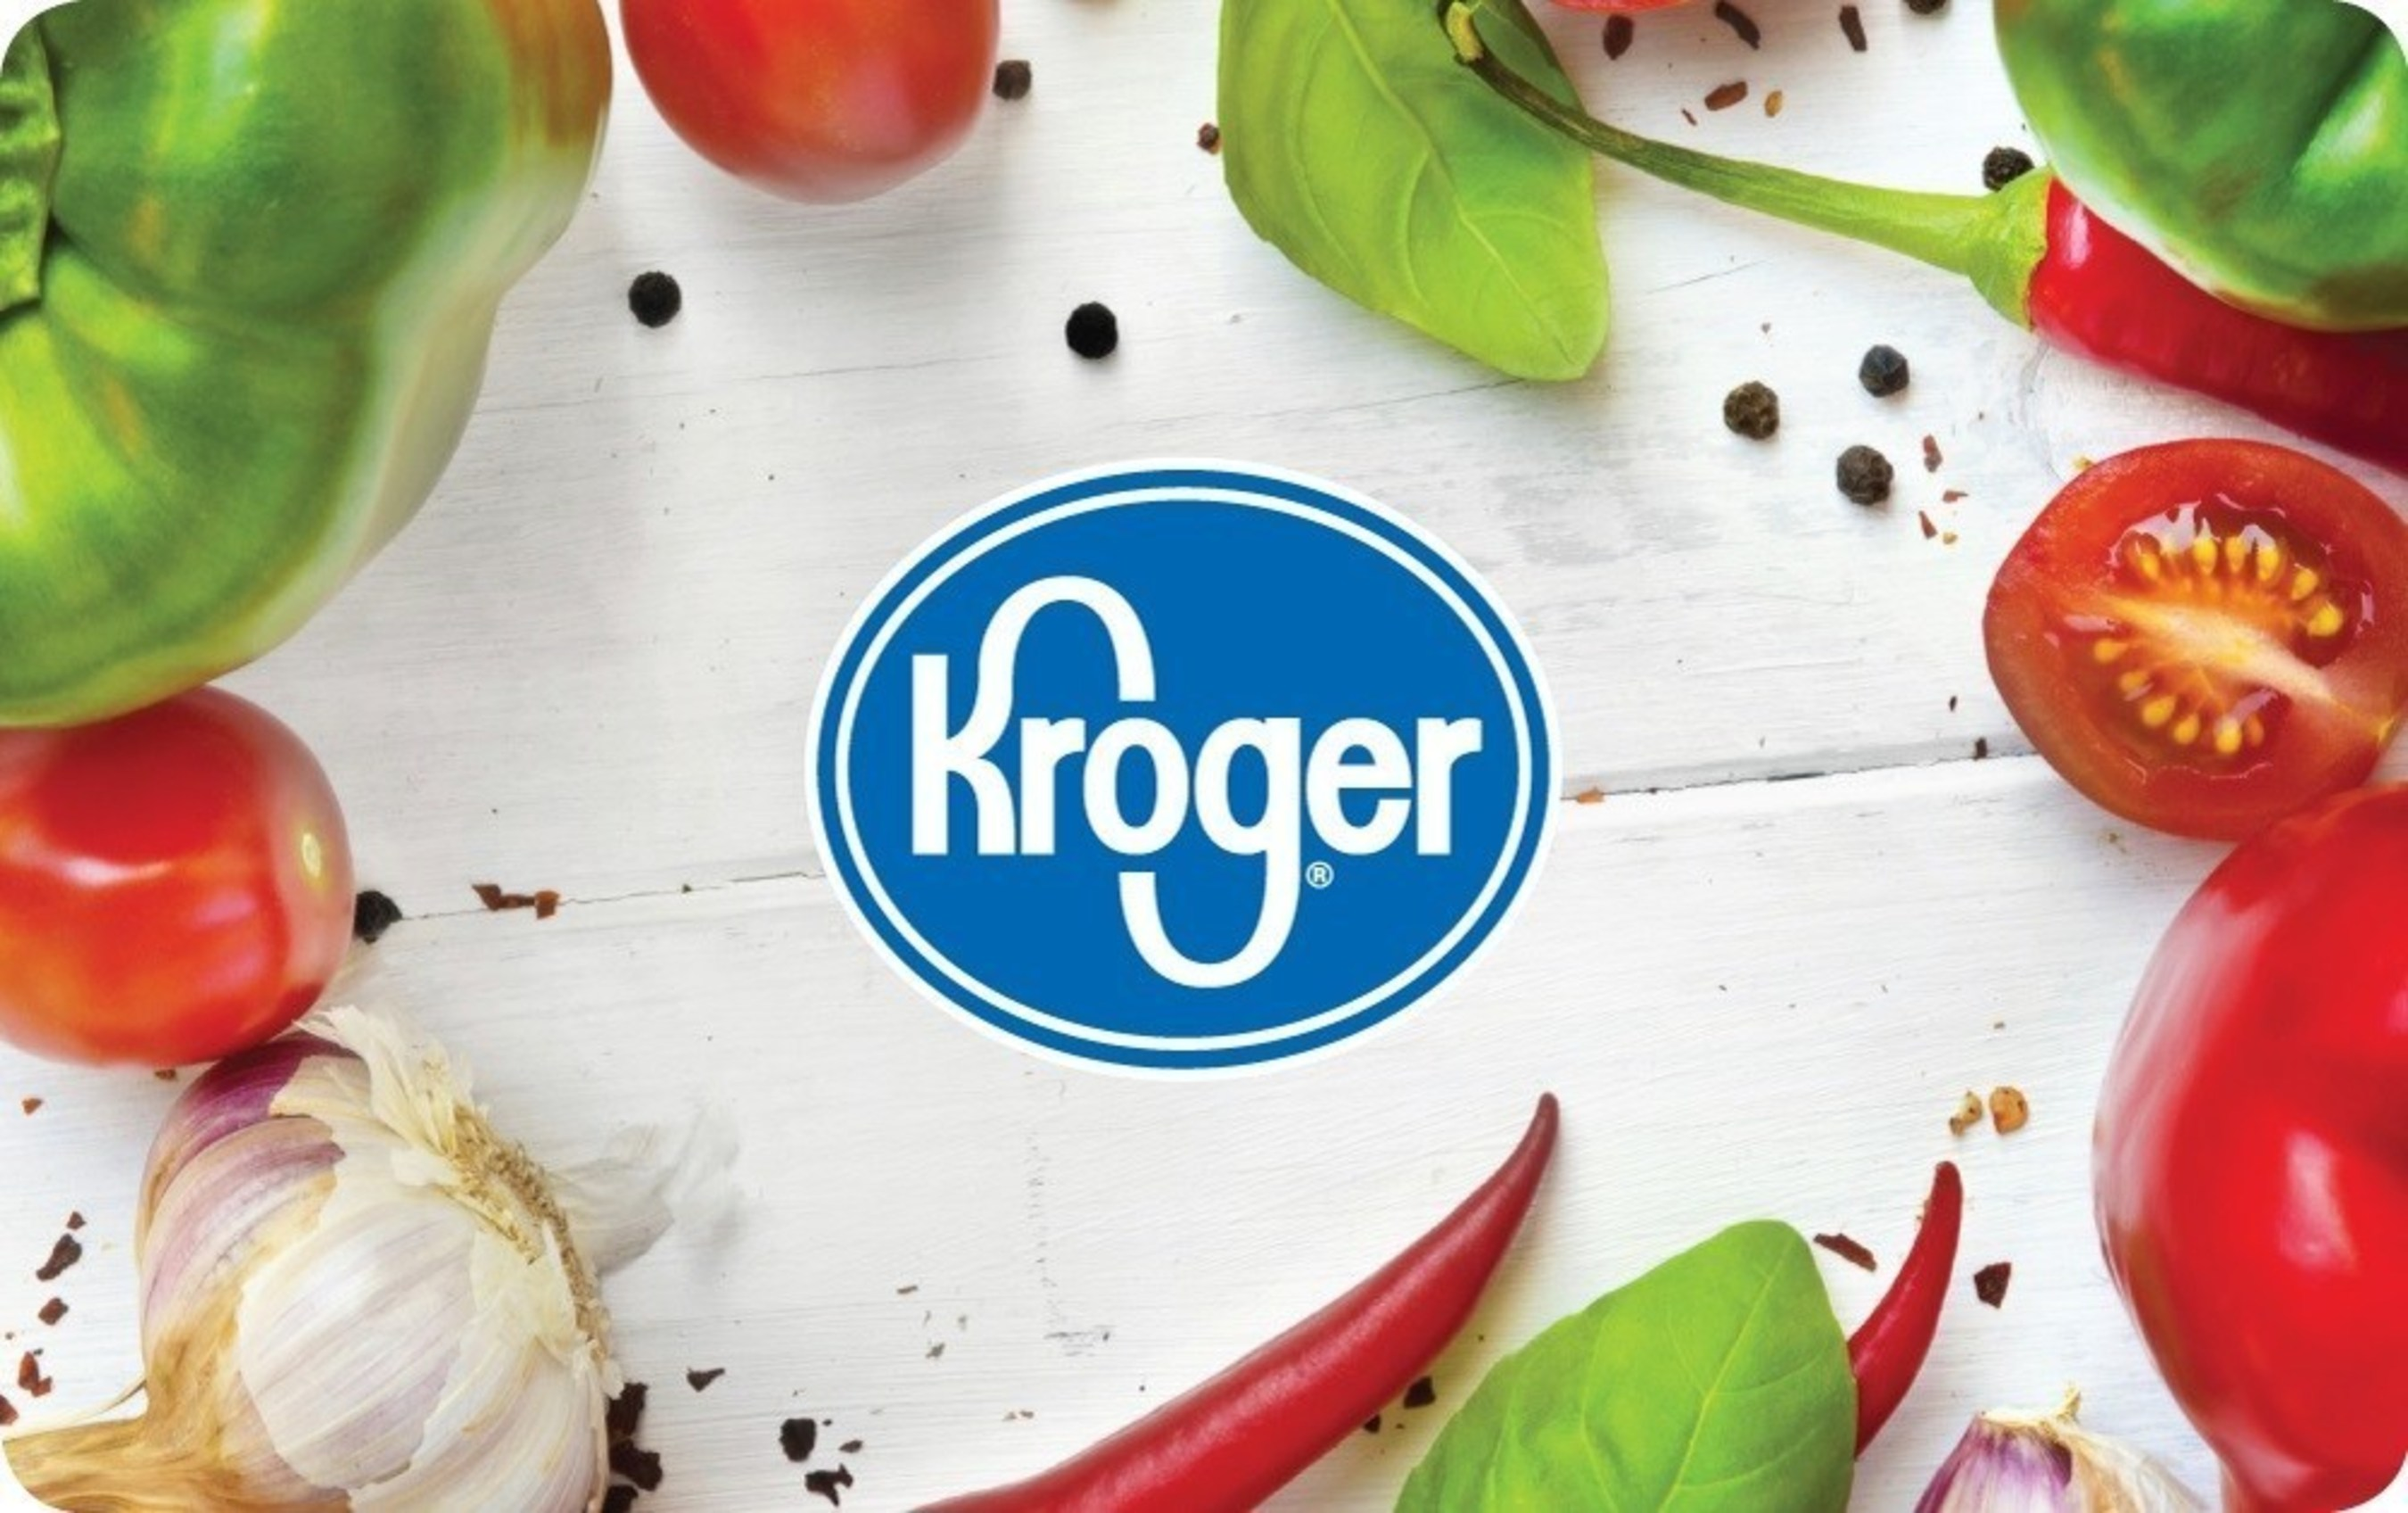 SVM Tapped to Bring the Kroger Brand Gift Card to Business to Business Channel